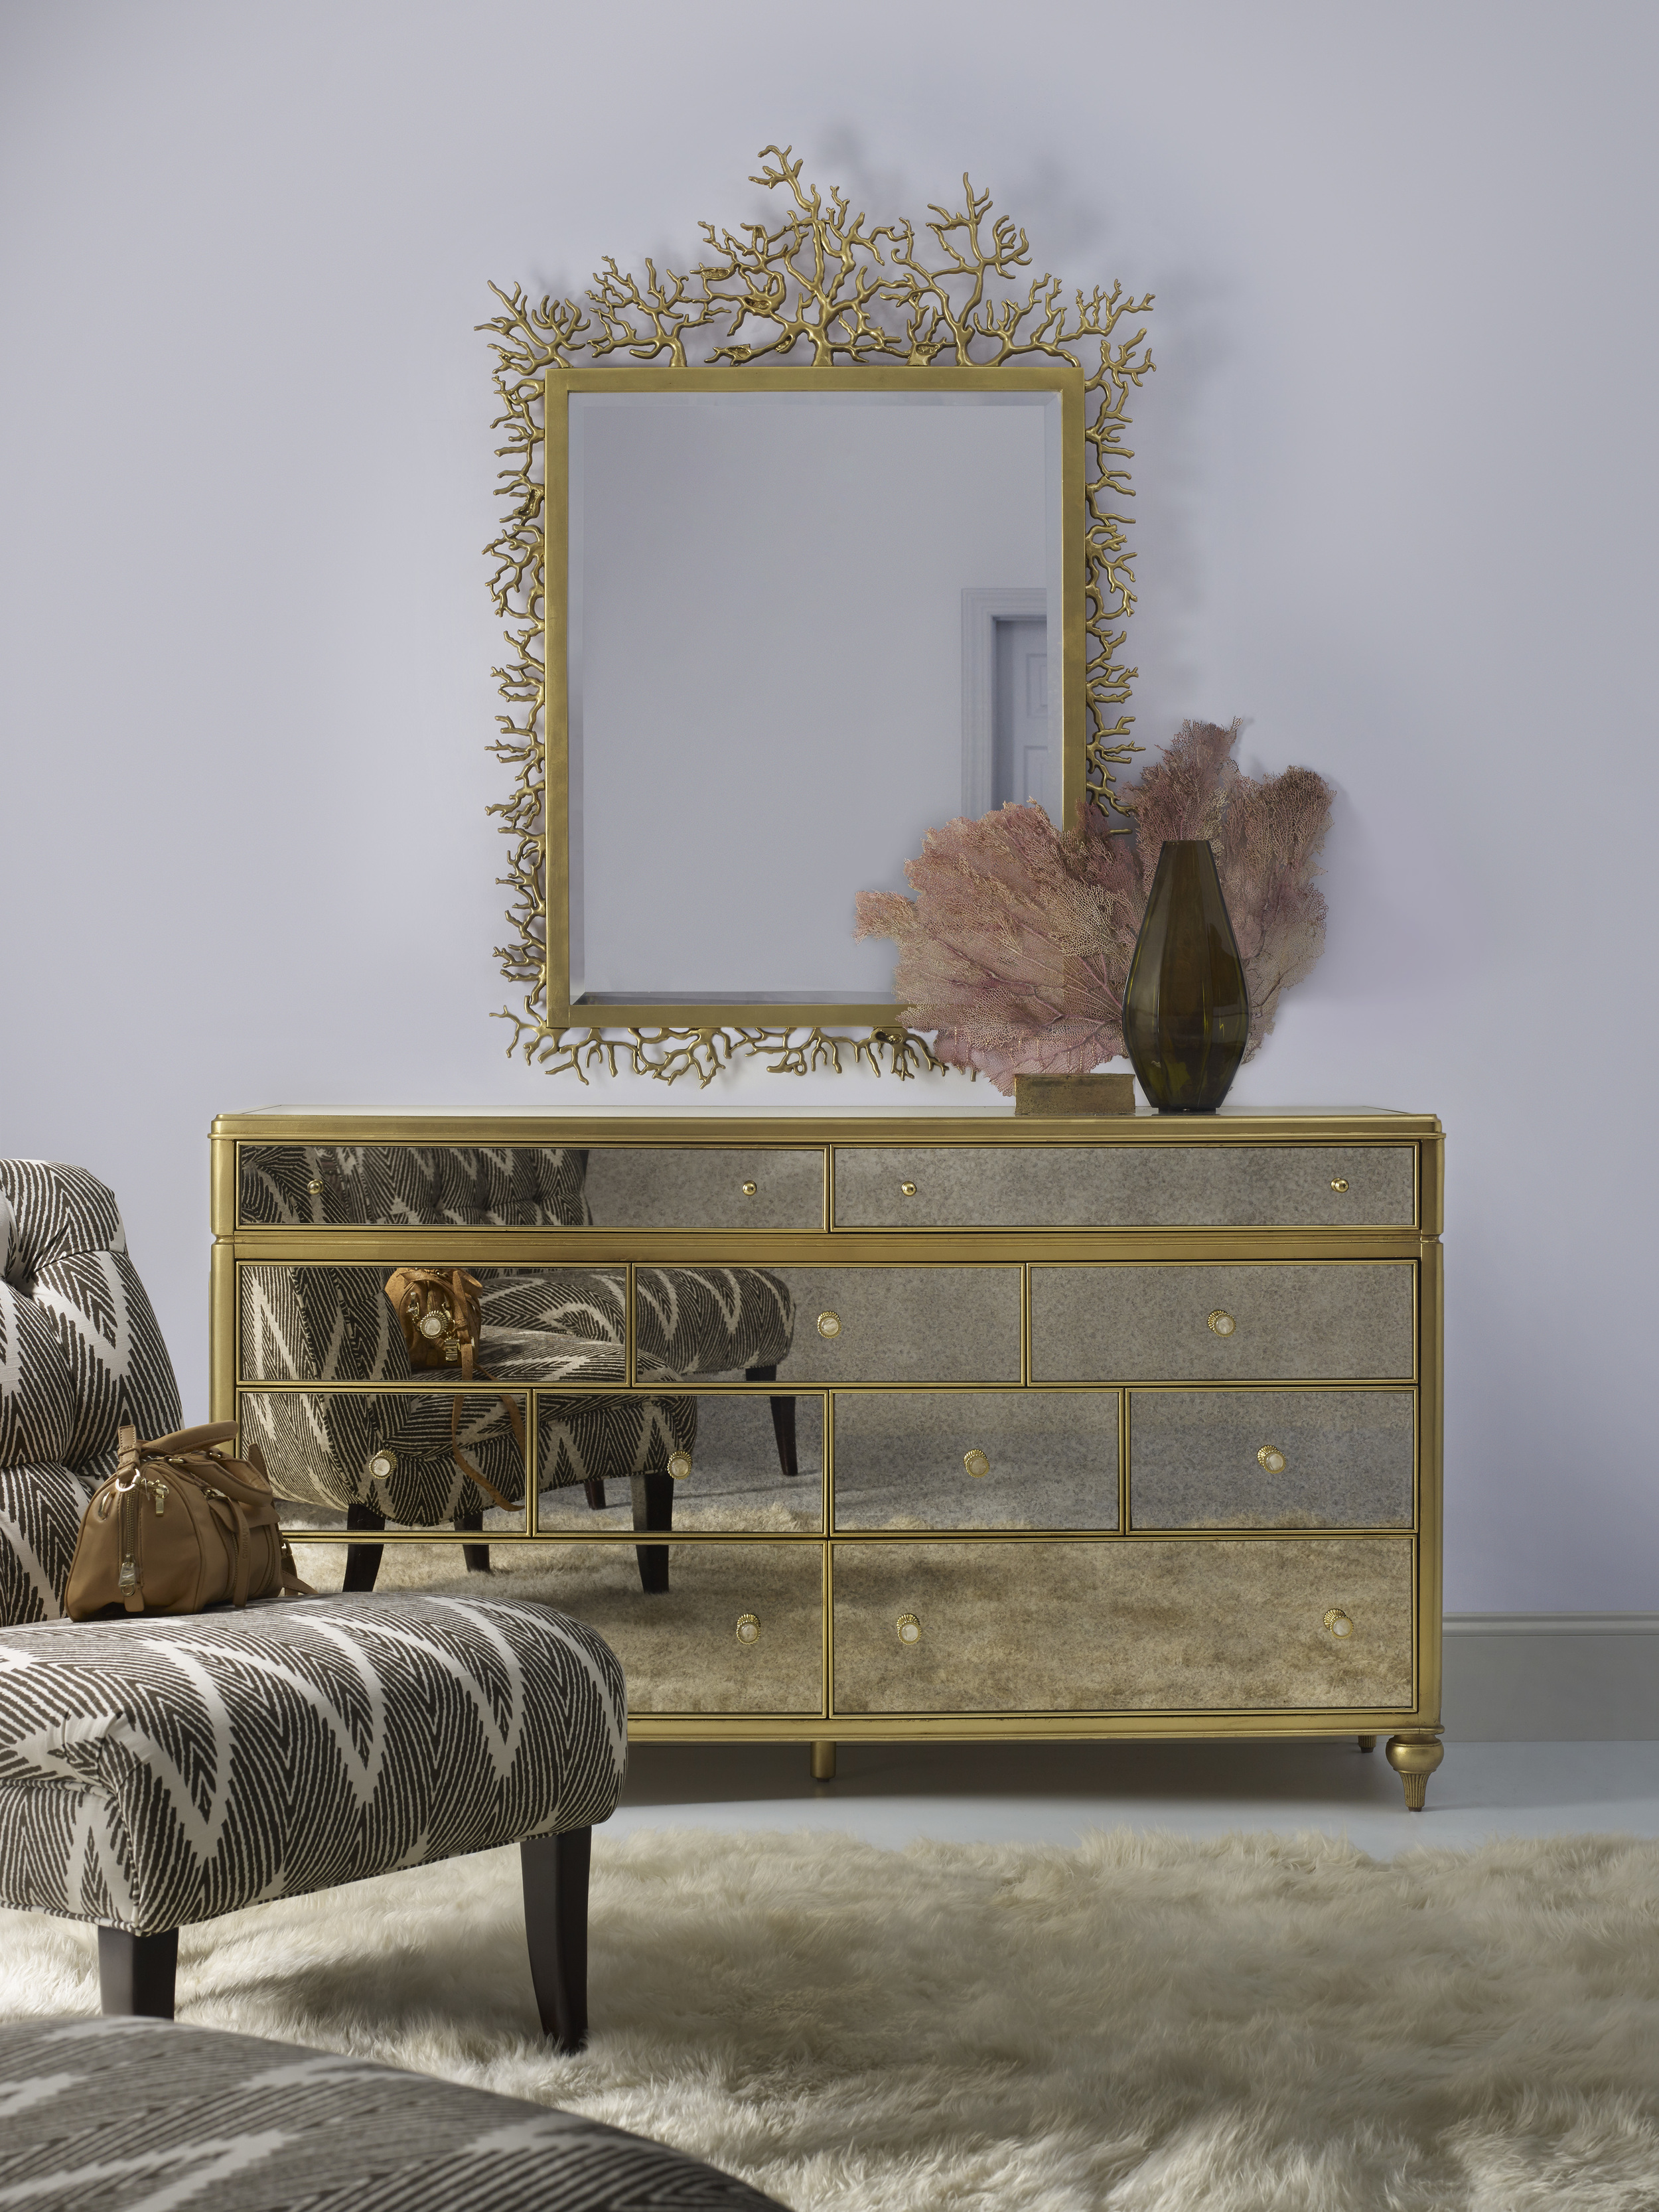 cynthia rowley for hooker furniture curious decorative twig mirror and dresser.jpg